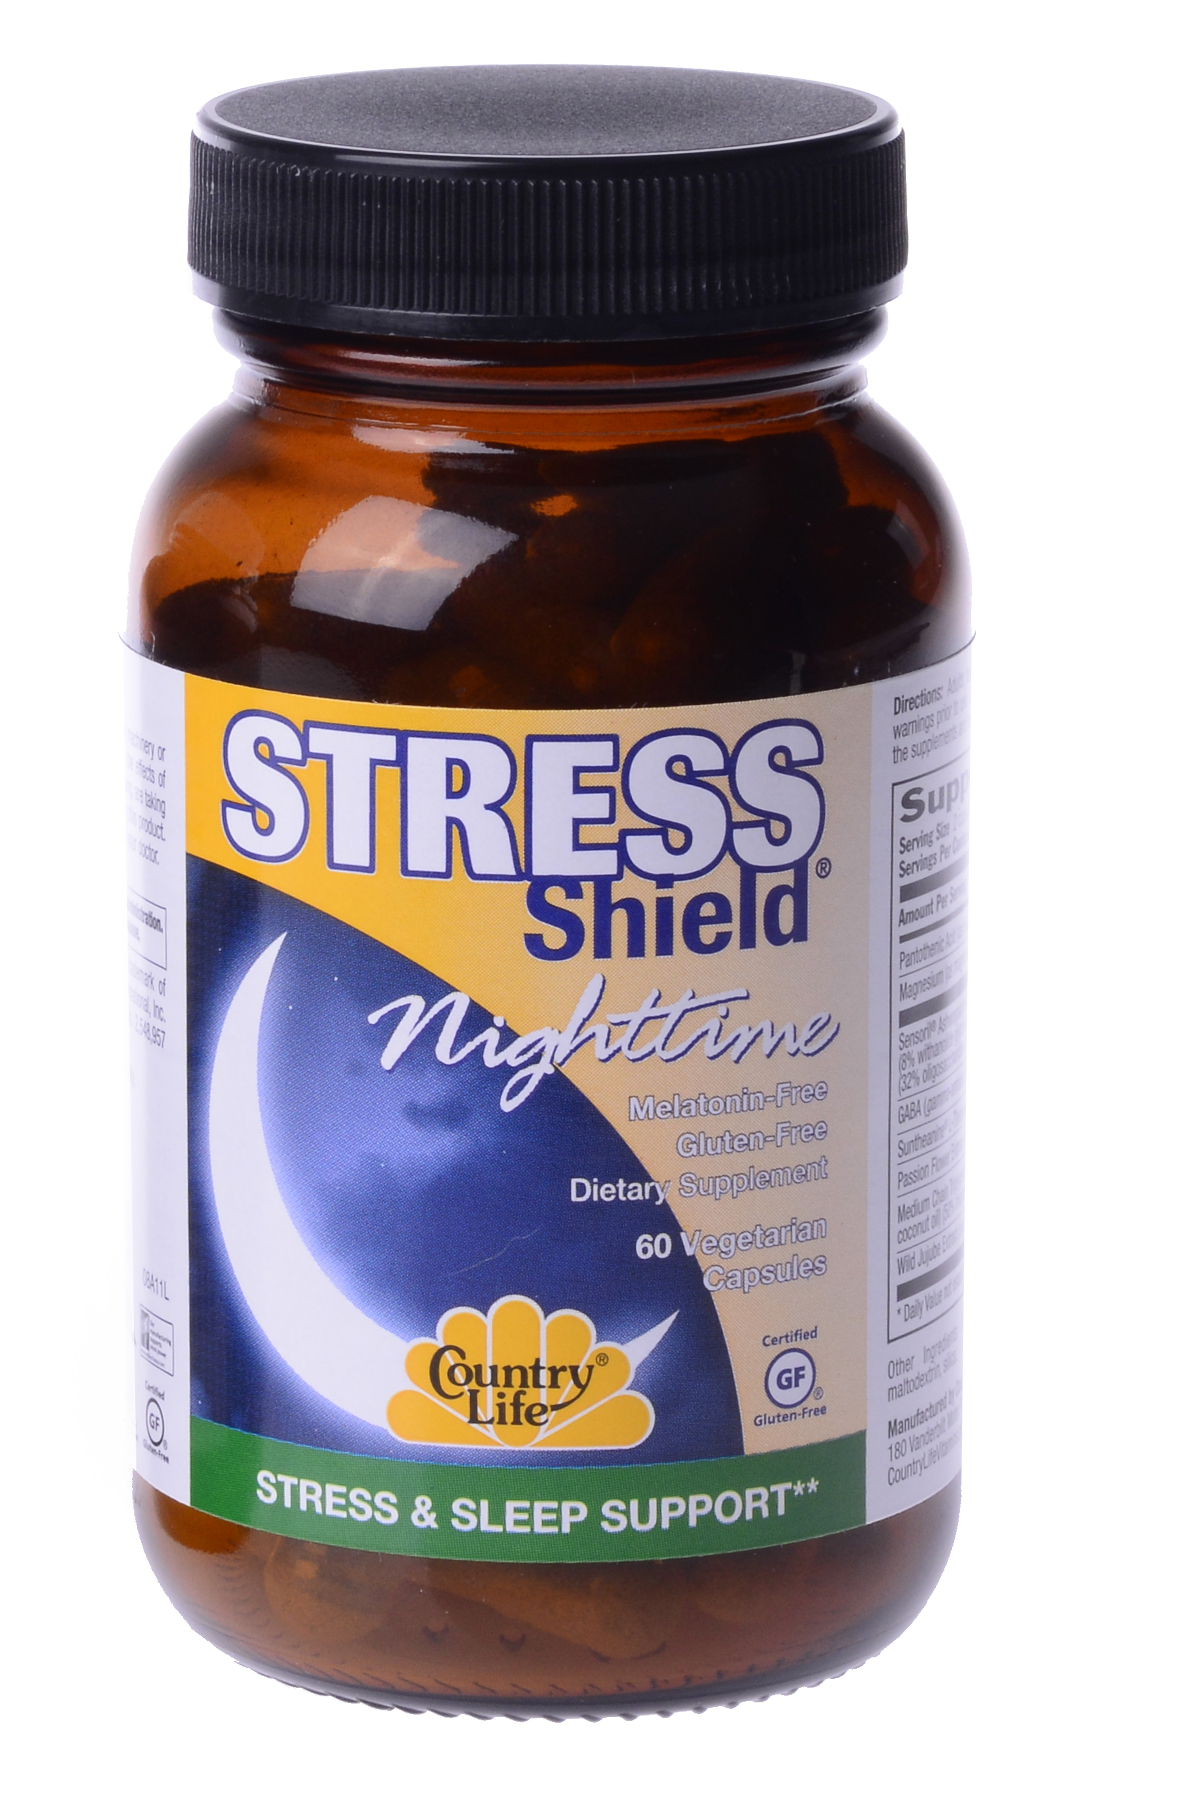 Country Life Stress Shield Nighttime